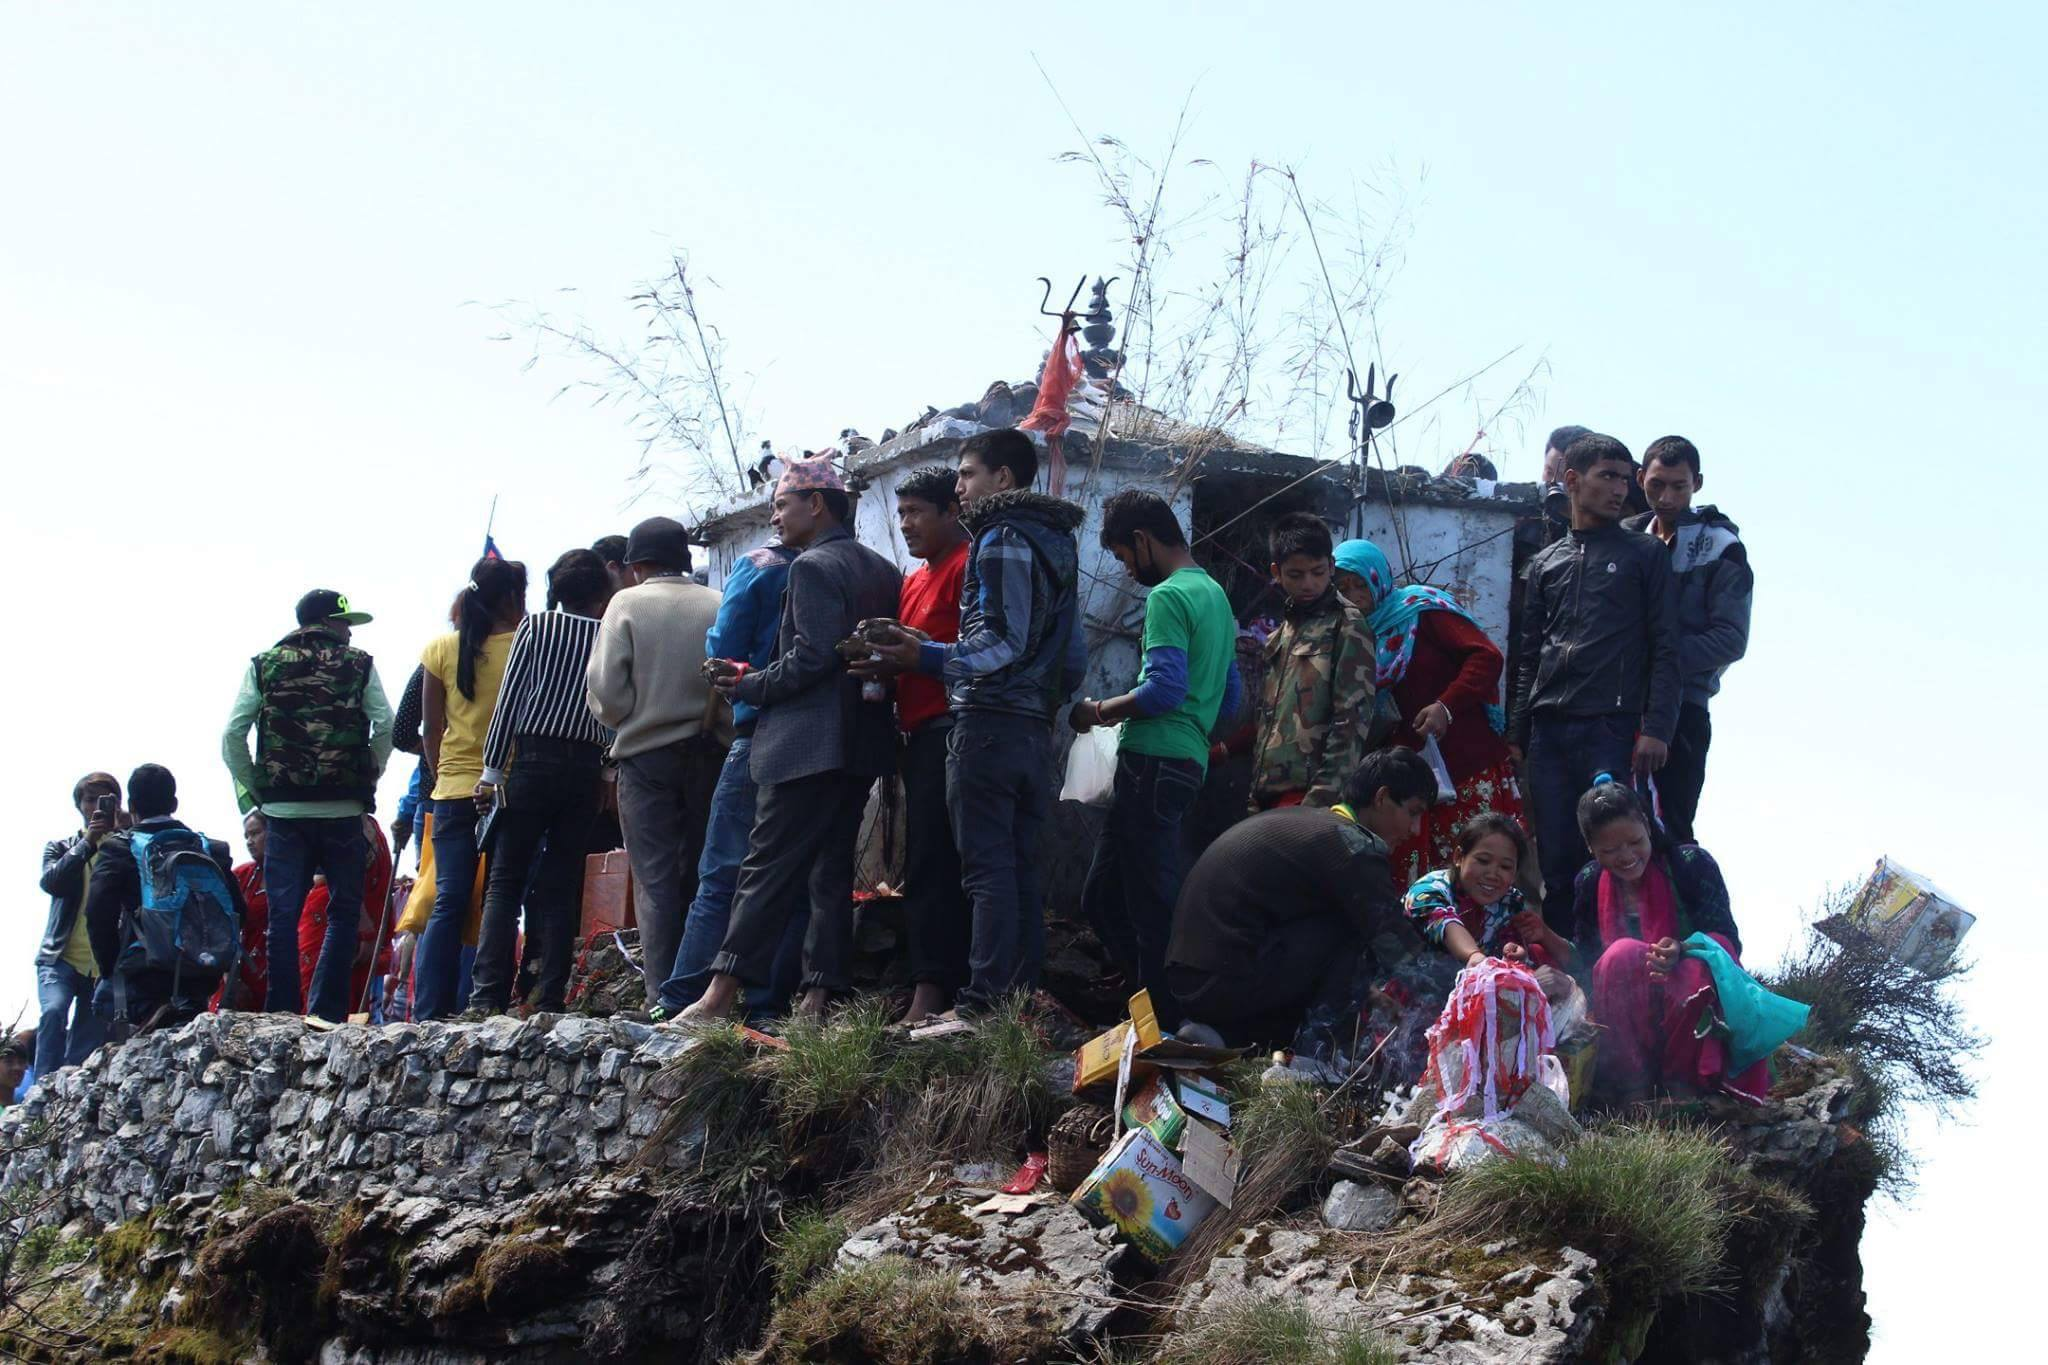 People waiting for their turn to worship the holy god at Ghumte temple, Galkot, Nepal